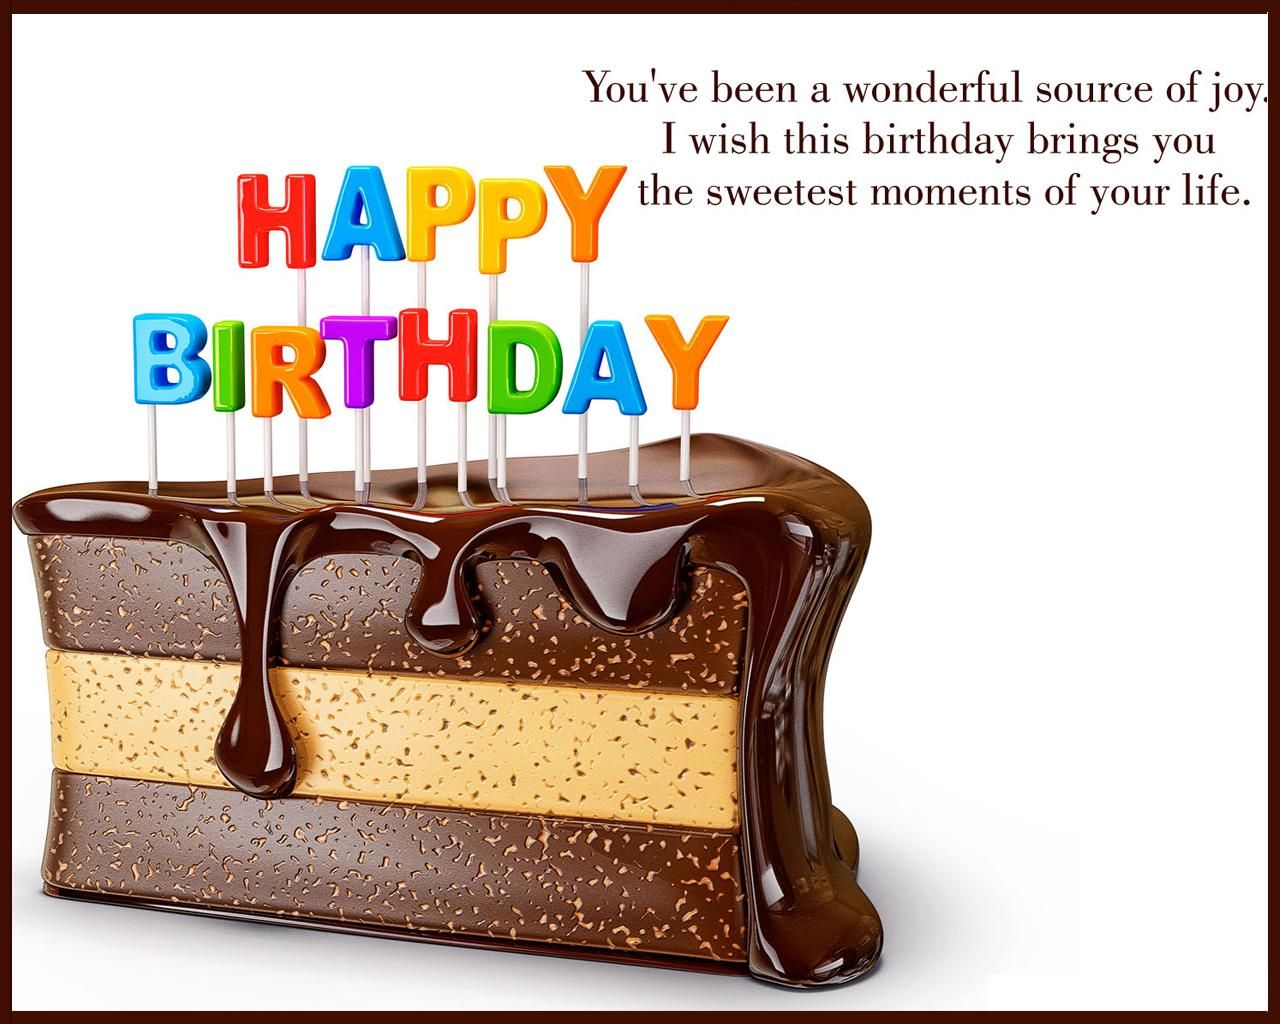 Wallpapers Pictures of Happy Birthday Wish Birthday Cards